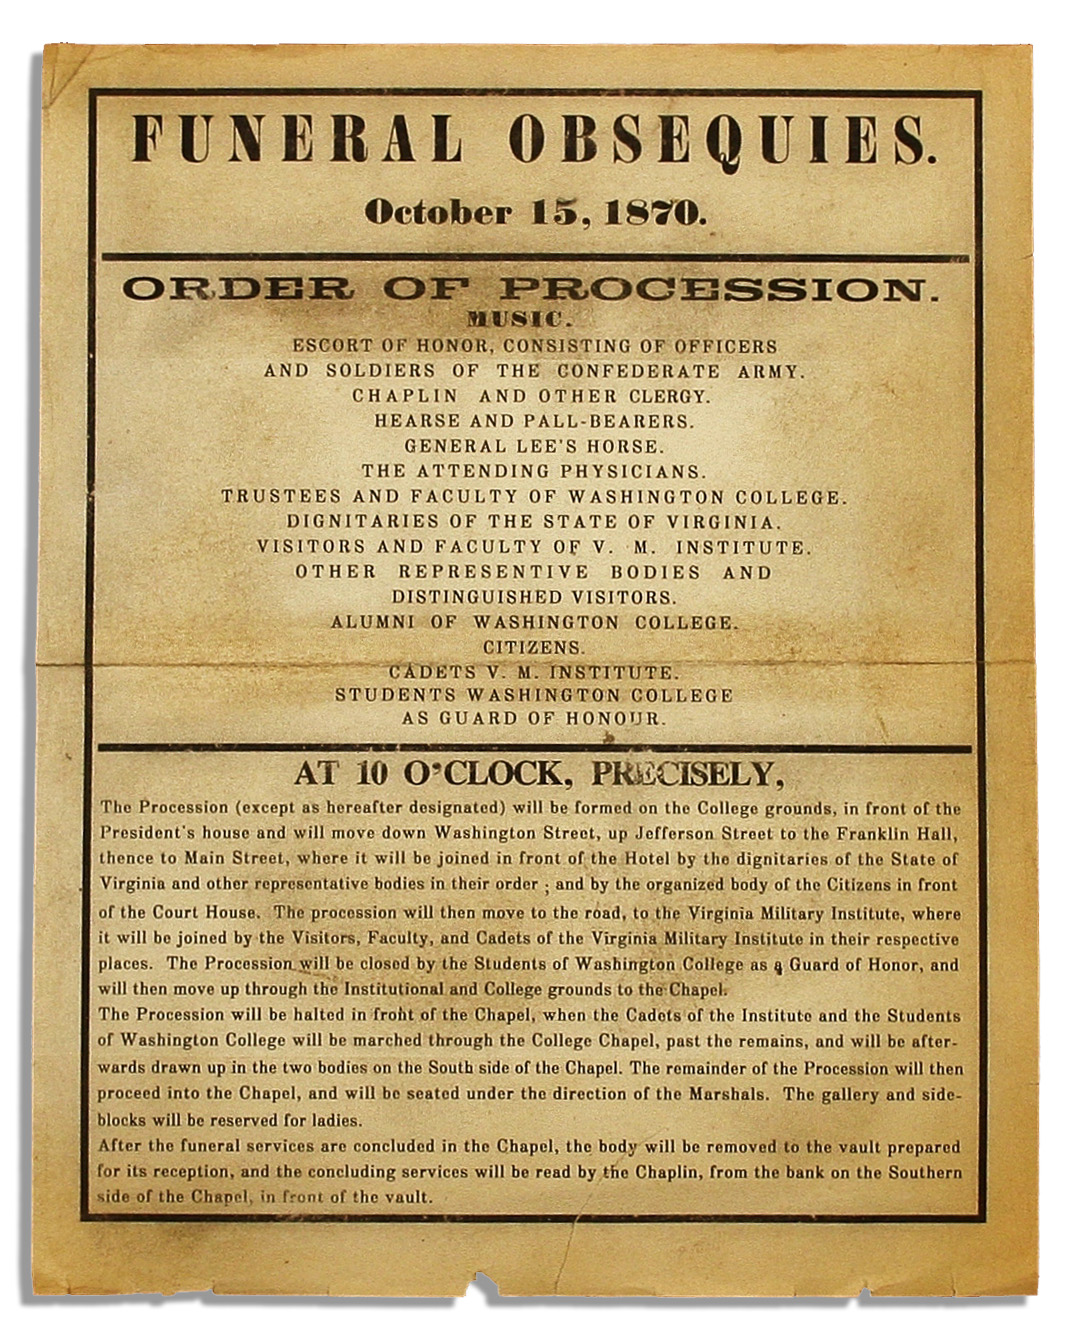 Robert E. Lee autograph Original Robert E. Lee Funeral Obsequies Broadside -- Detailing the Legendary Civil War Leader's Funeral Procession -- ''...Consisting of Officers and Soldiers of the Confederate Army...''